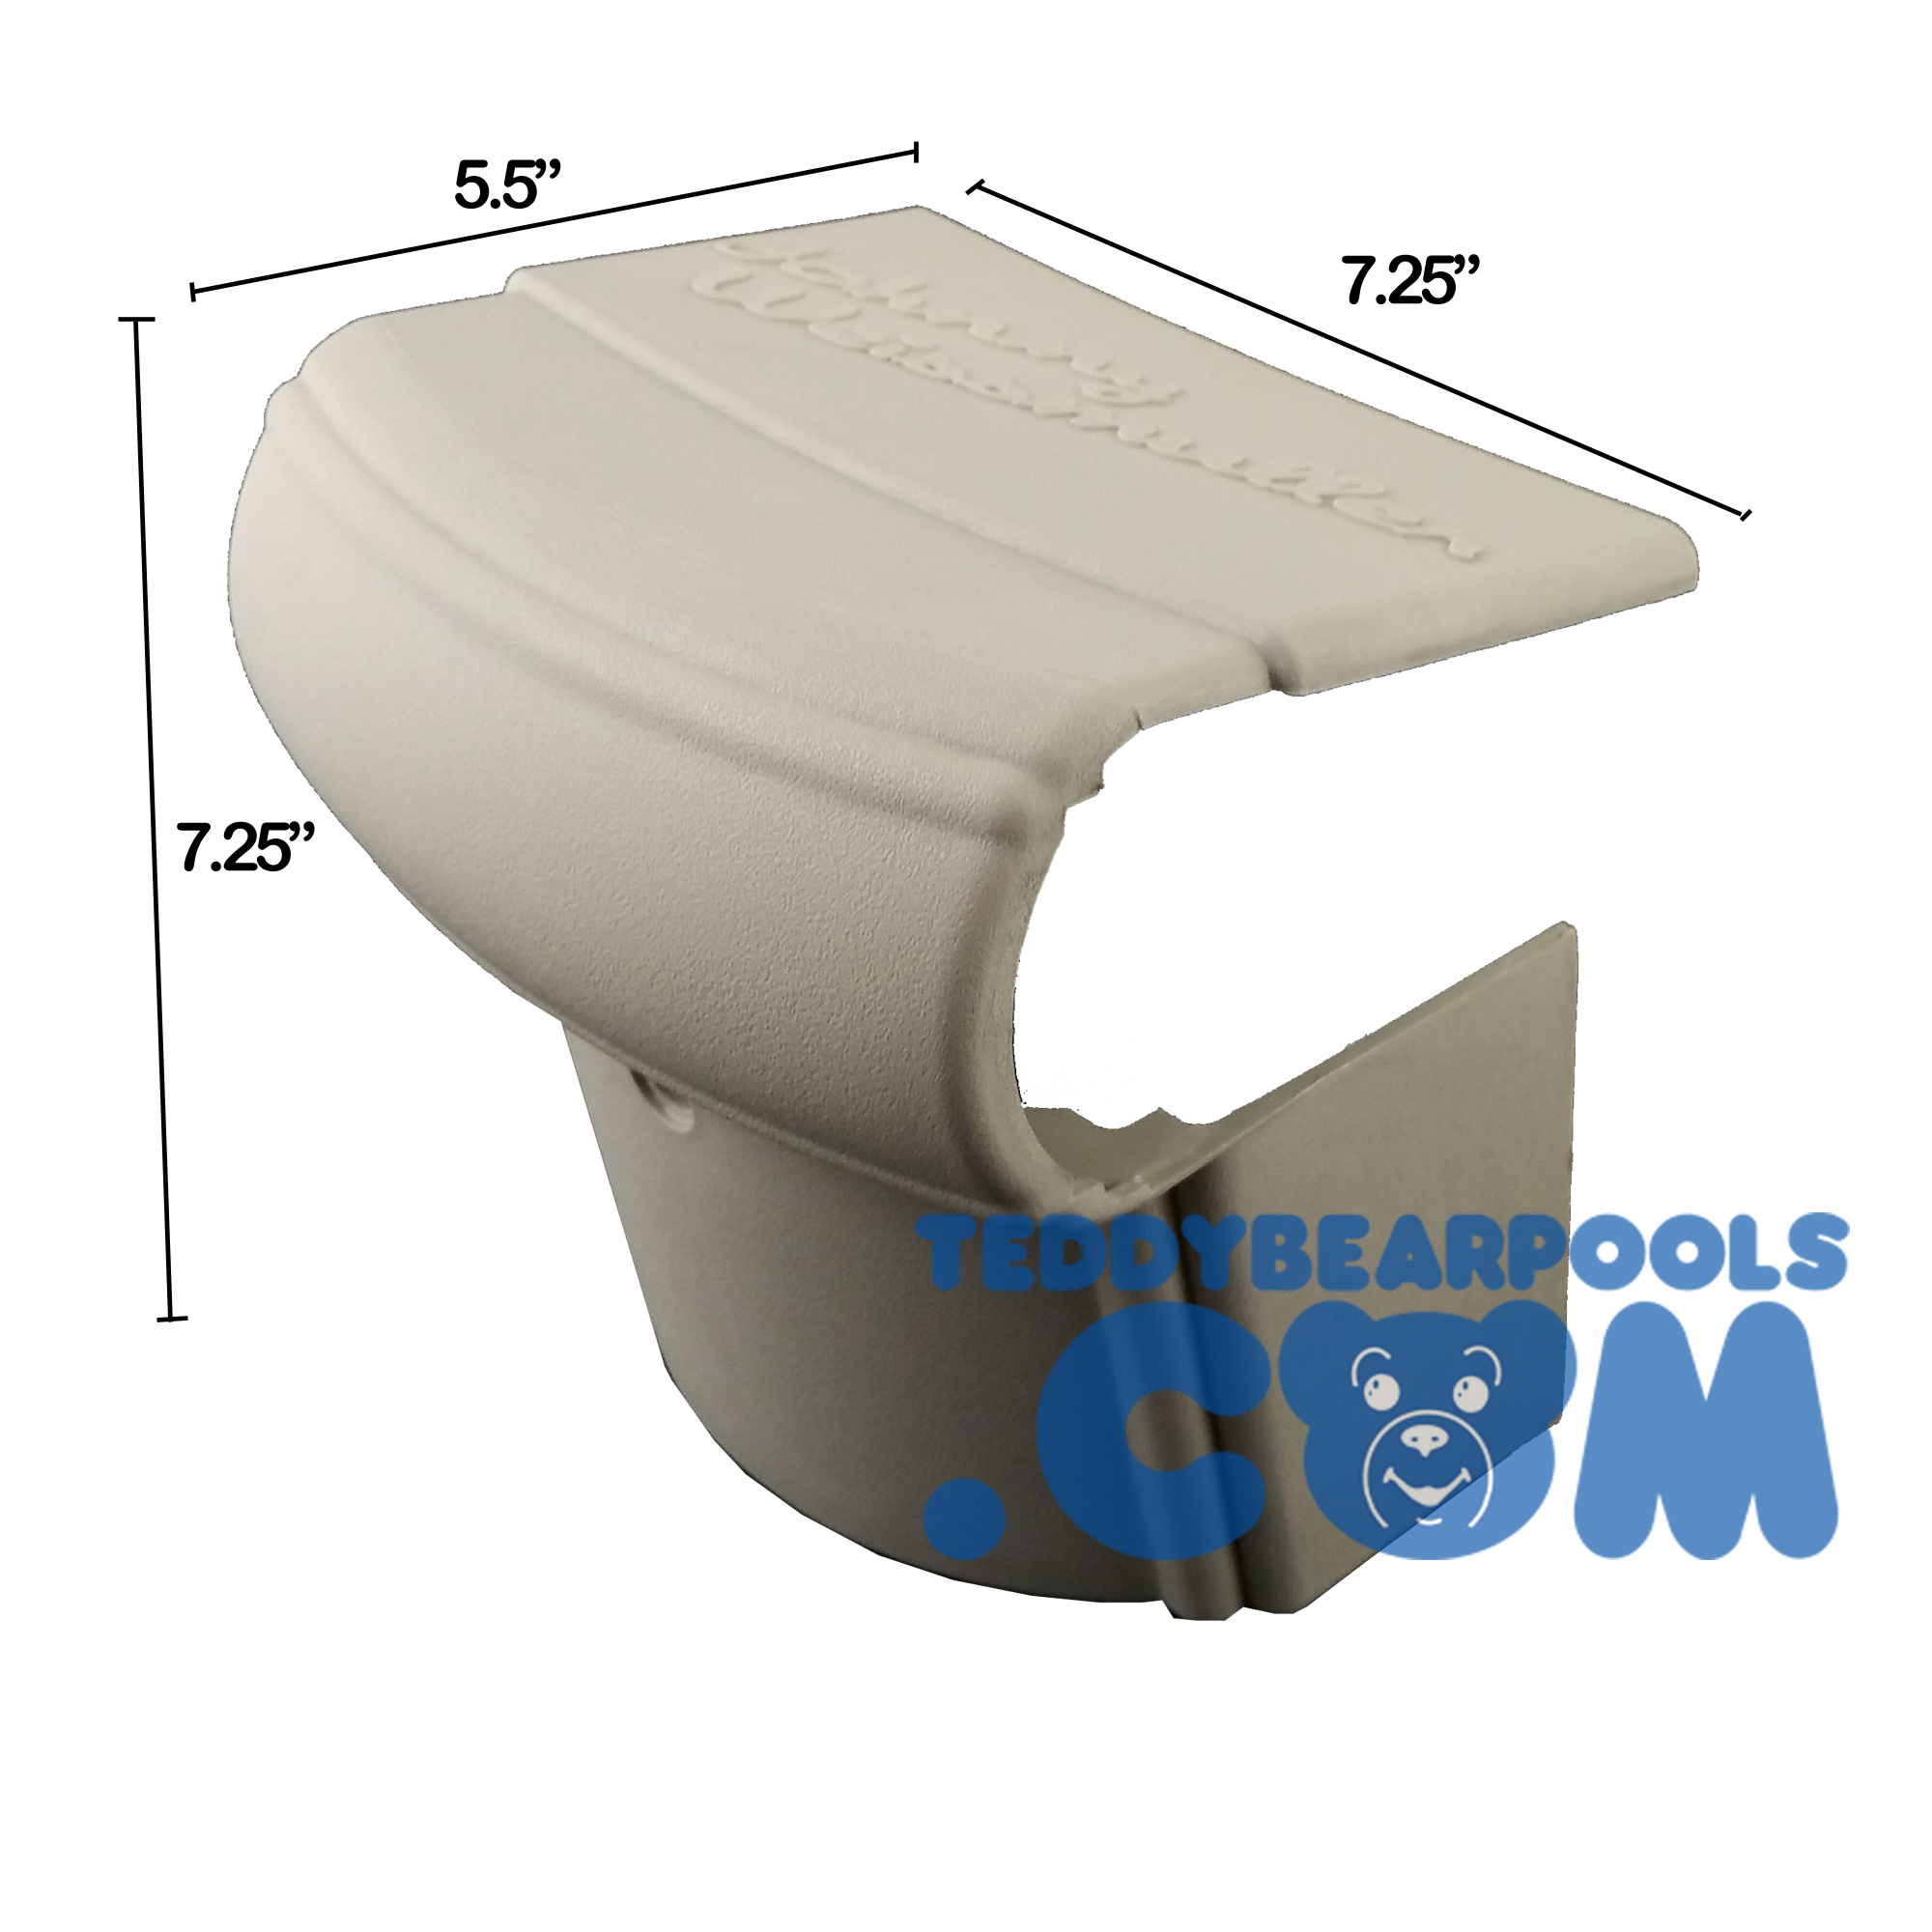 Rear Coping Cover For Johnny Weissmuller Sahara Pool